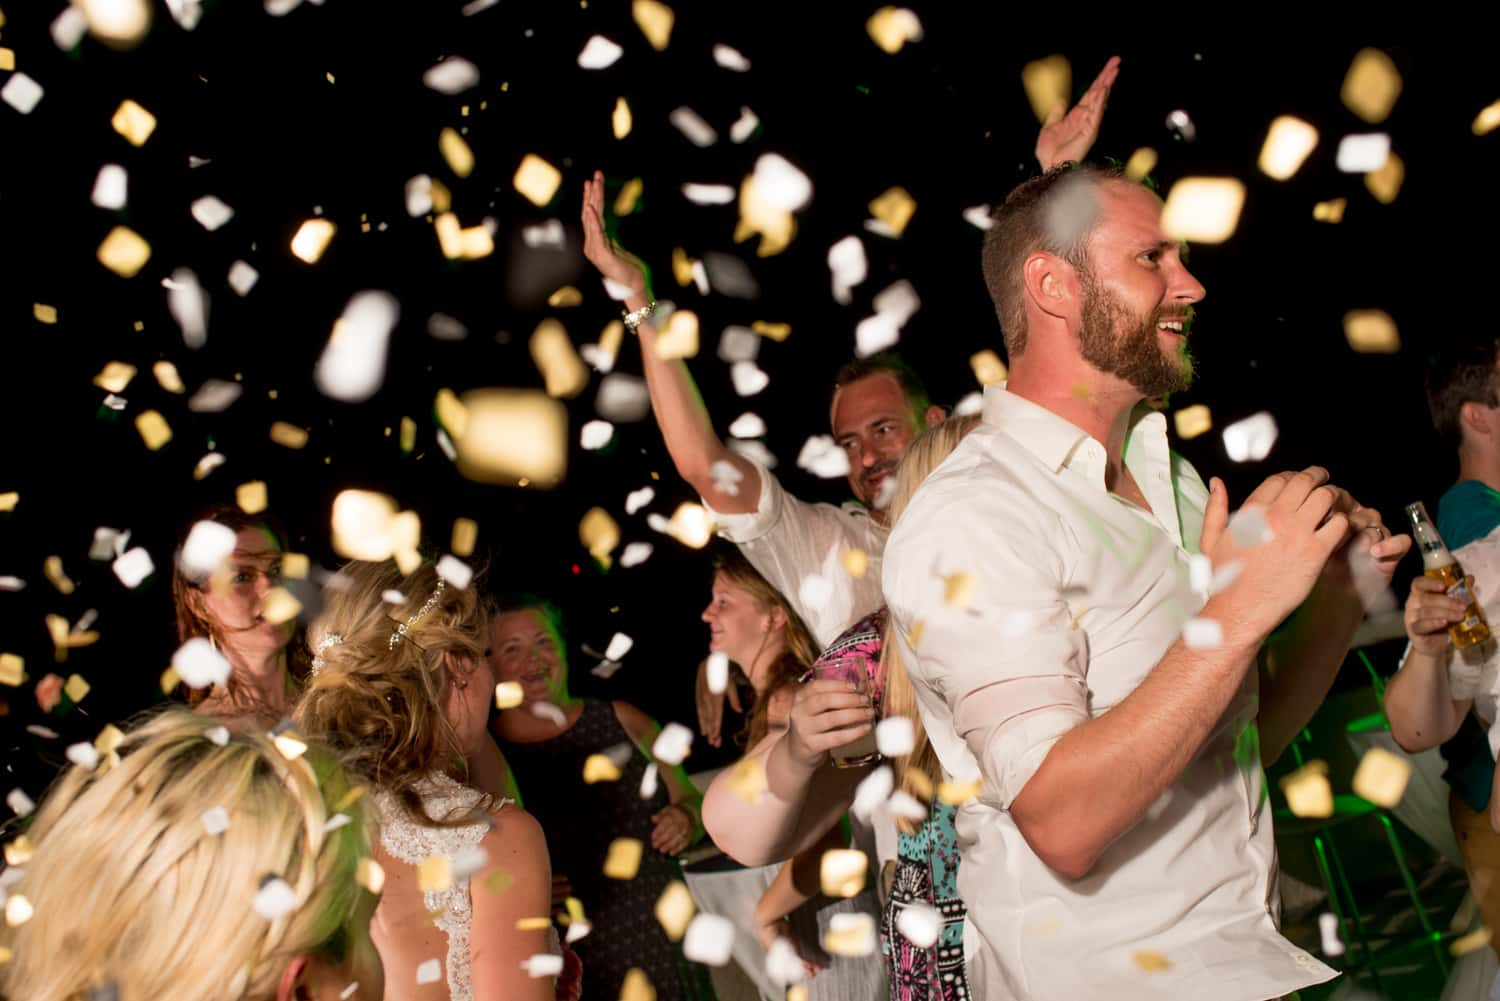 Wedding reception with white and yellow confetti